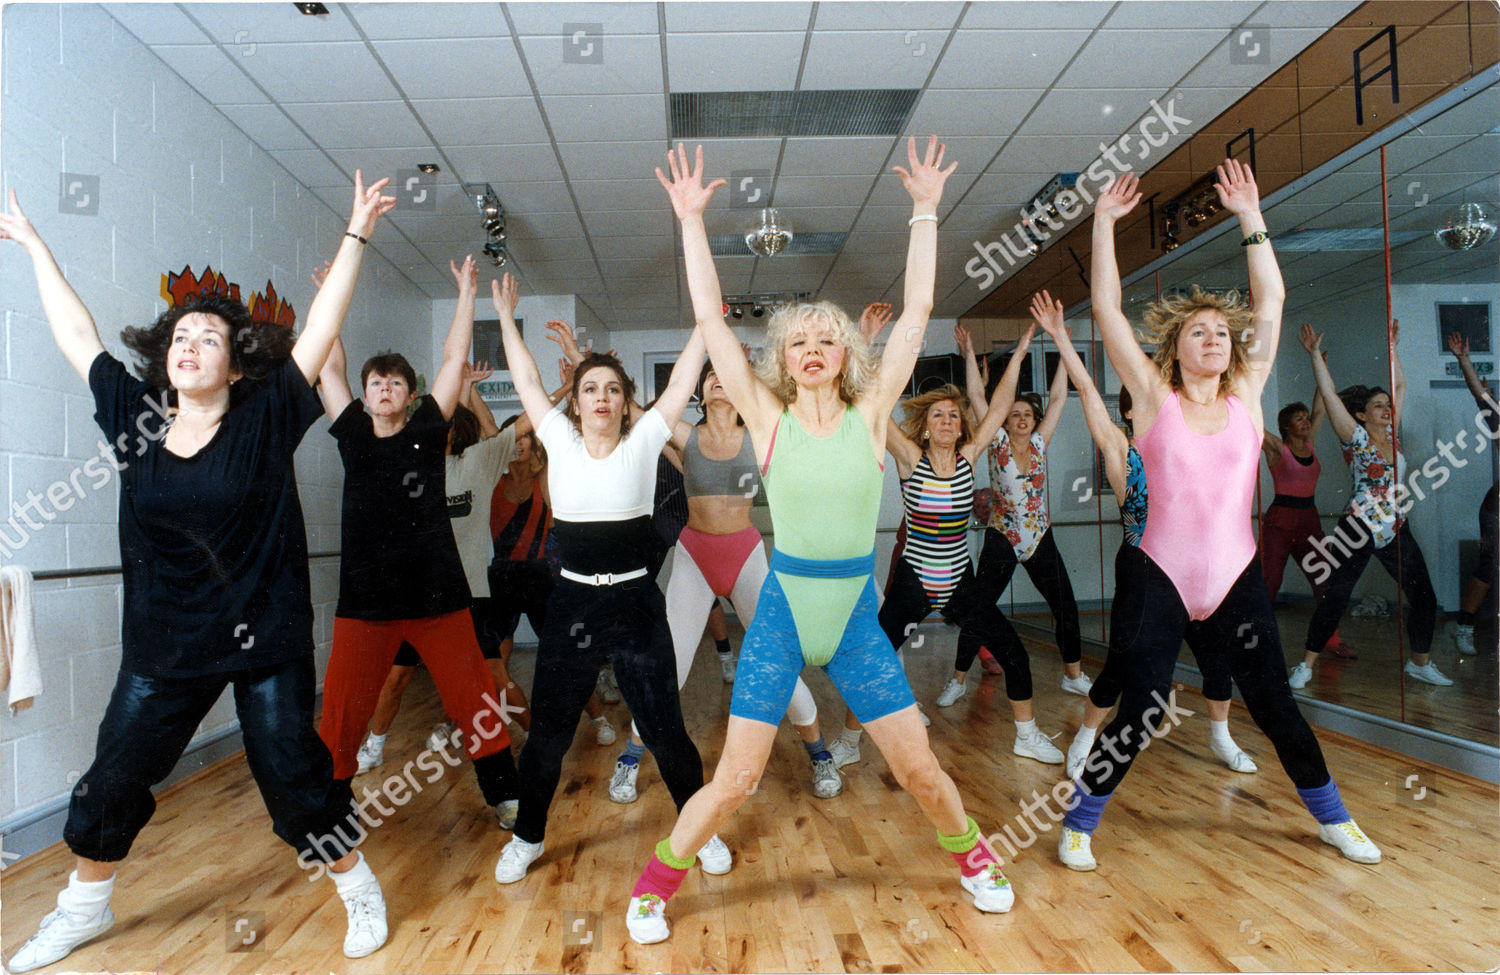 an-aerobic-workout-at-the-gym-shutterstock-editorial-3025967a.jpg